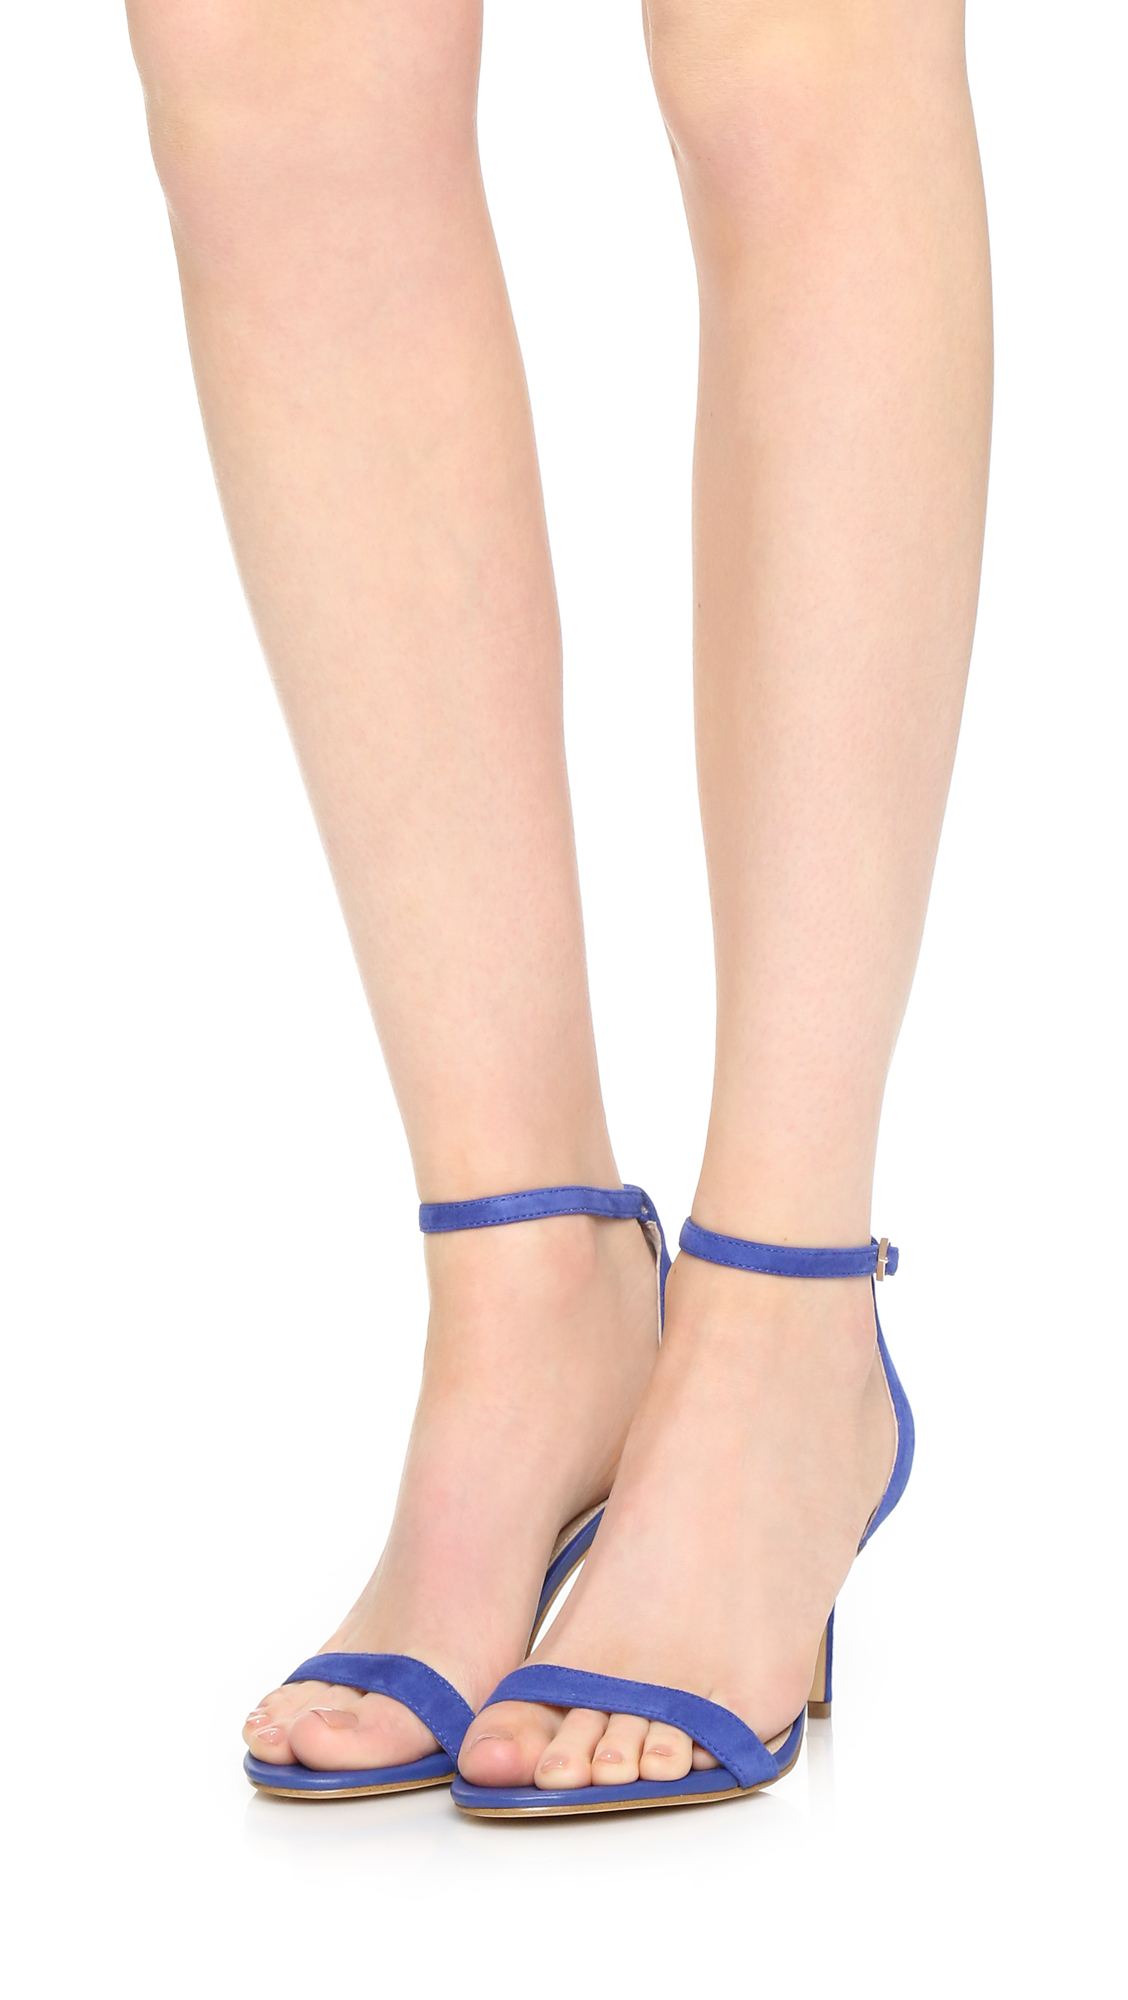 e3dde511b Sam Edelman Patti Mid Heel Sandals in Blue - Lyst